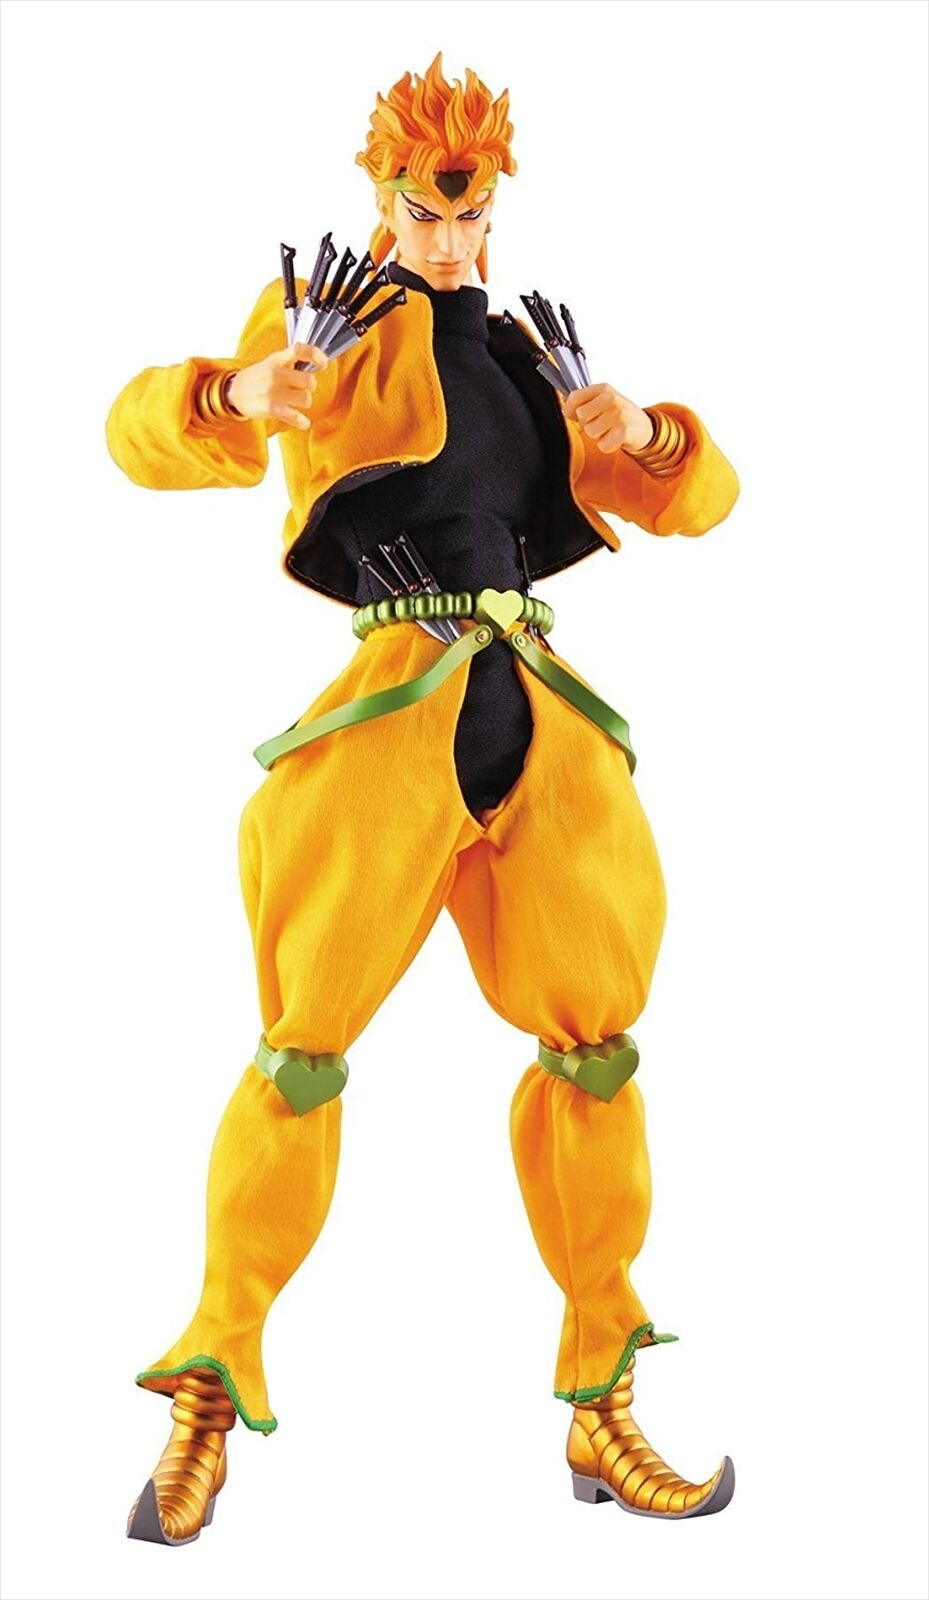 MEDICOM TOY Real Action Heroes JoJo`s Bizarre Adventure DIO 1 6 Action Figure